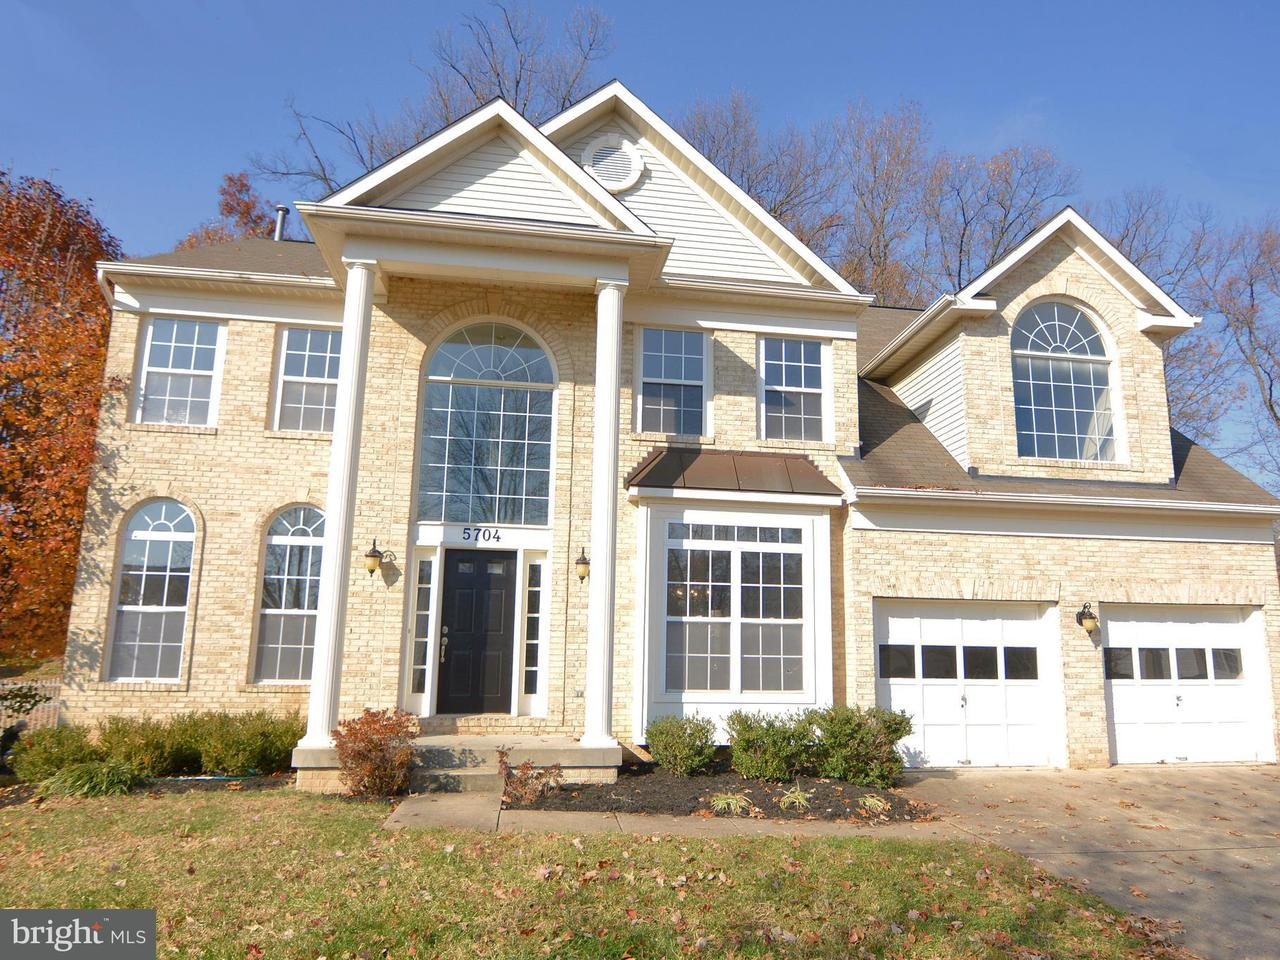 Single Family Home for Sale at 5704 LYNGATE Court 5704 LYNGATE Court Lanham, Maryland 20706 United States